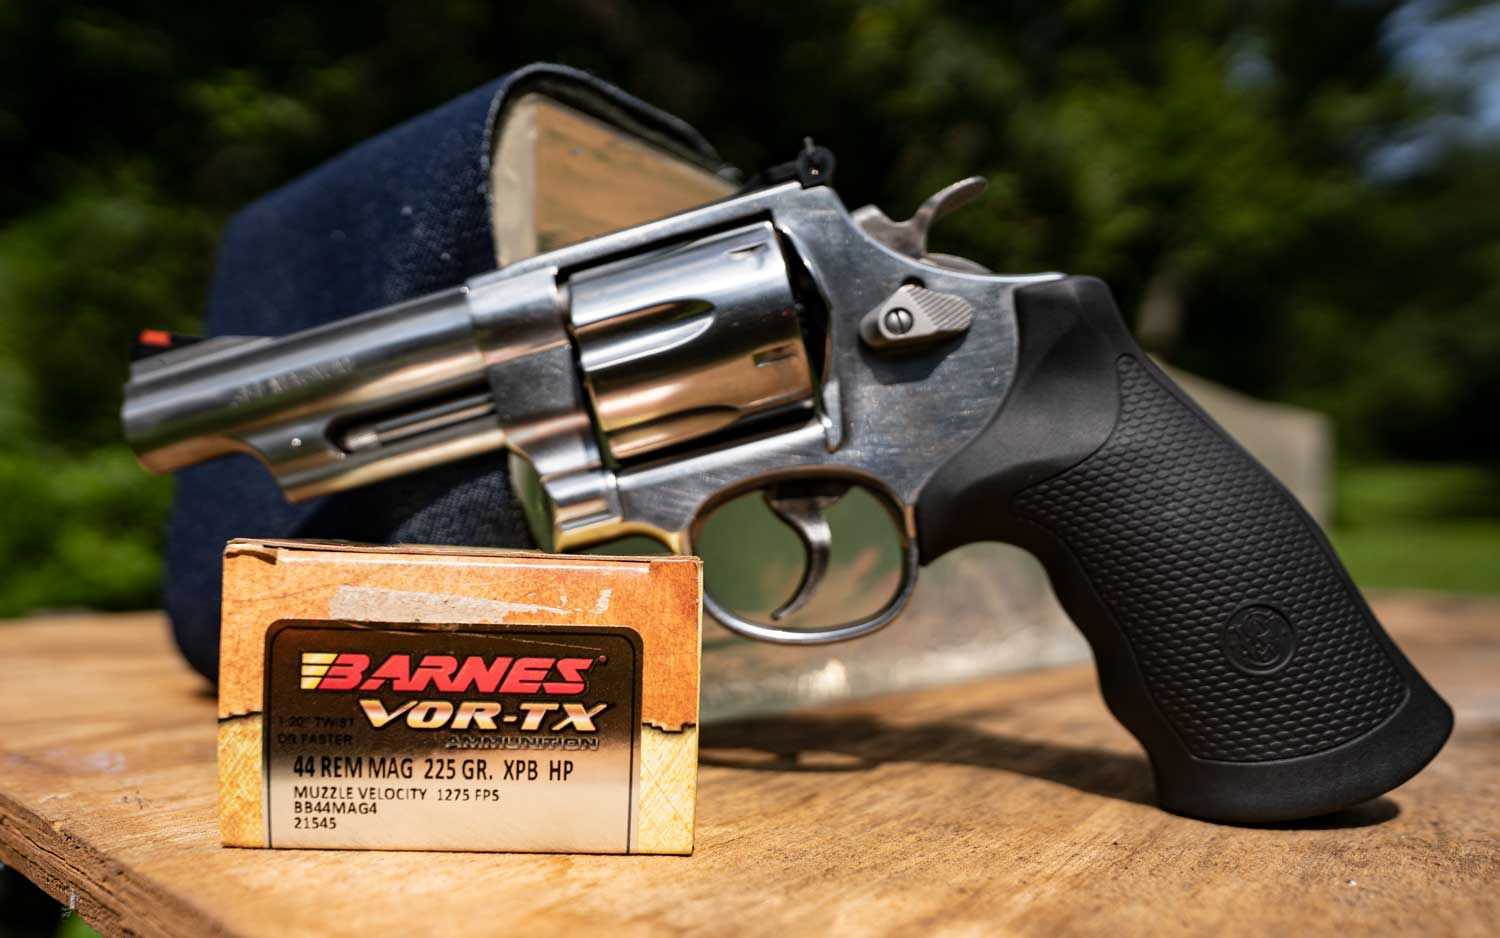 A 44 magnum revolver by Smith & Wesson with Barnes ammunition